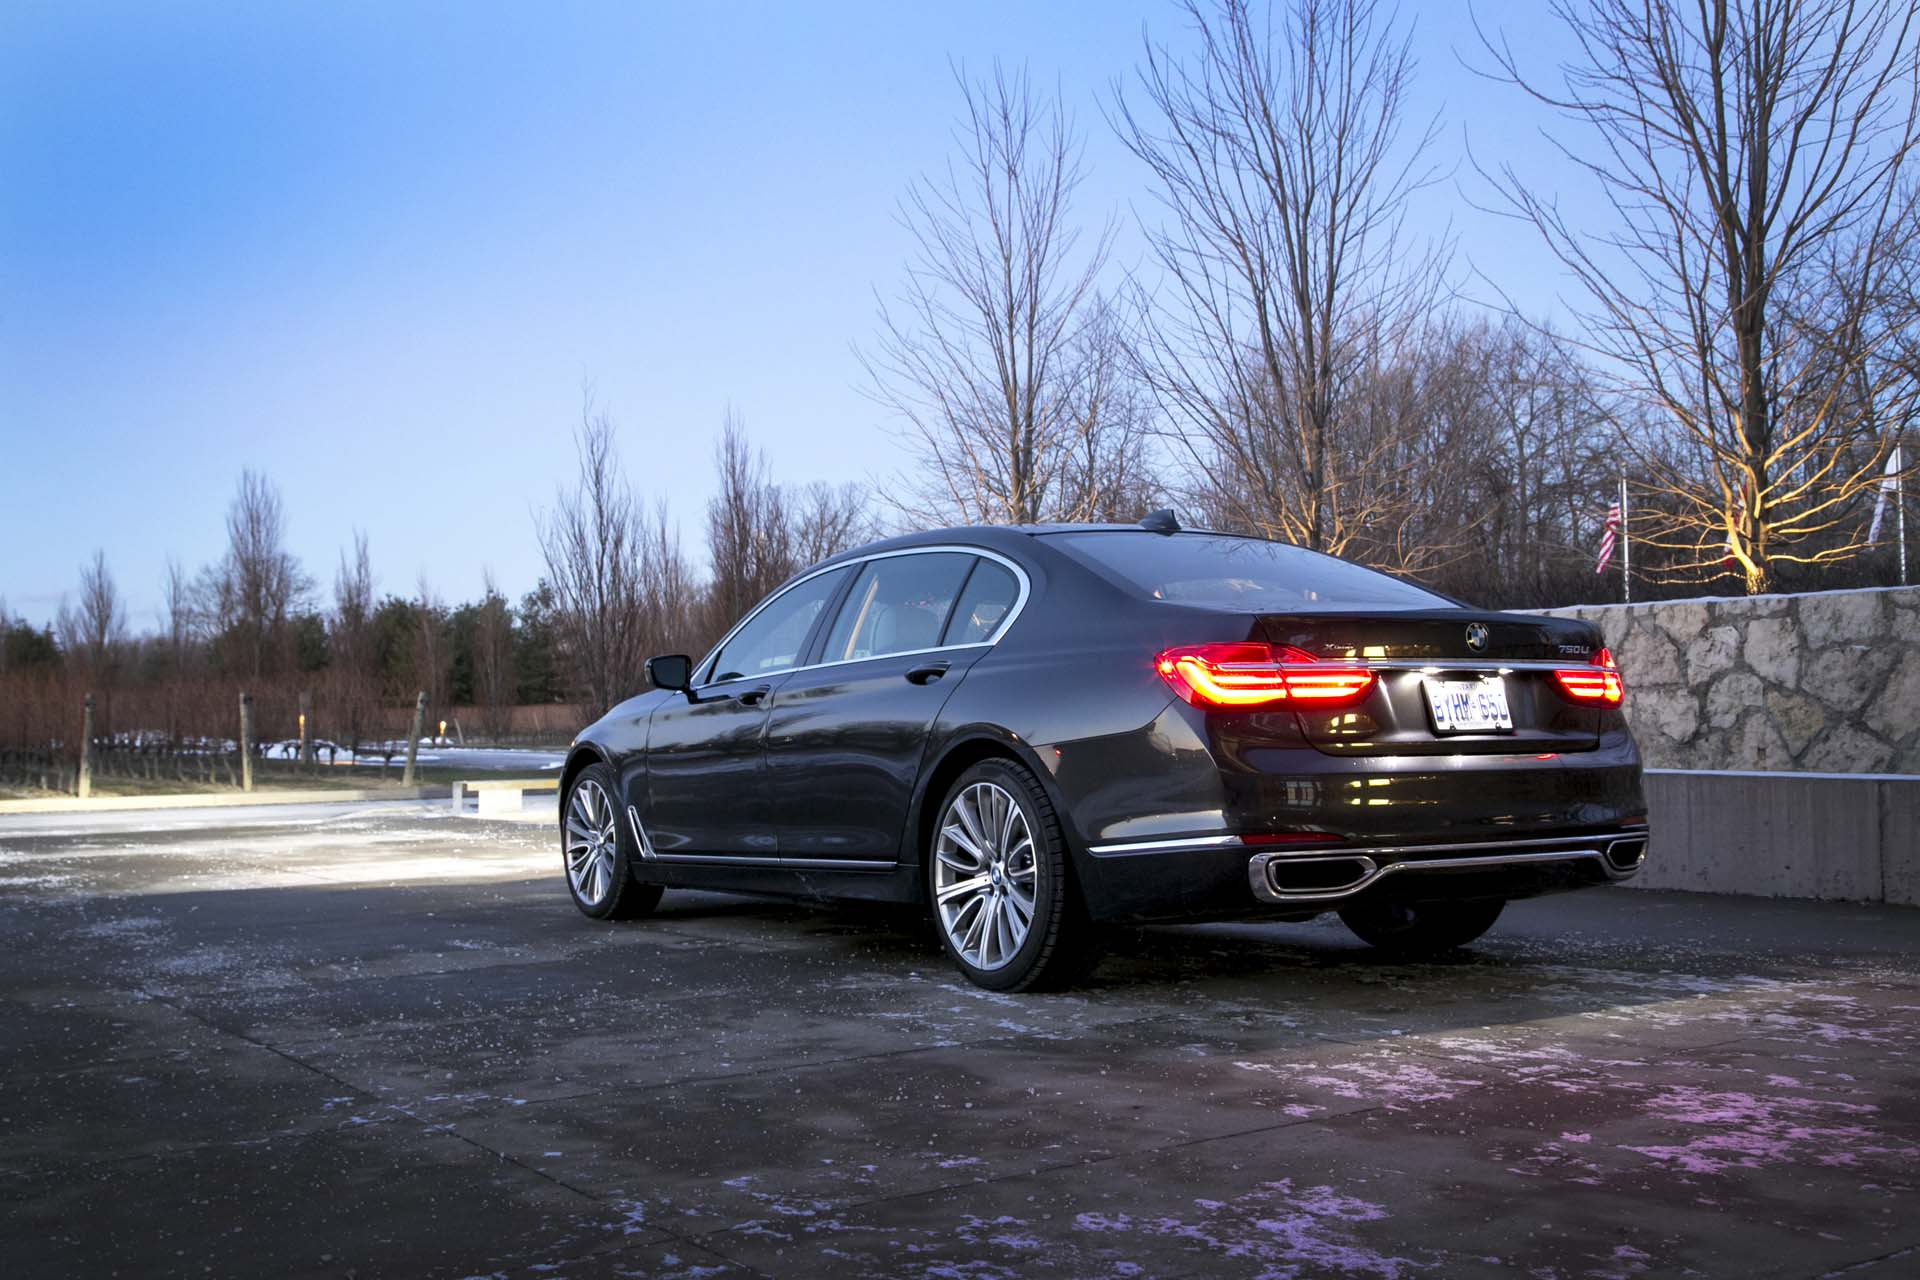 2016 bmw 750li xdrive. Black Bedroom Furniture Sets. Home Design Ideas